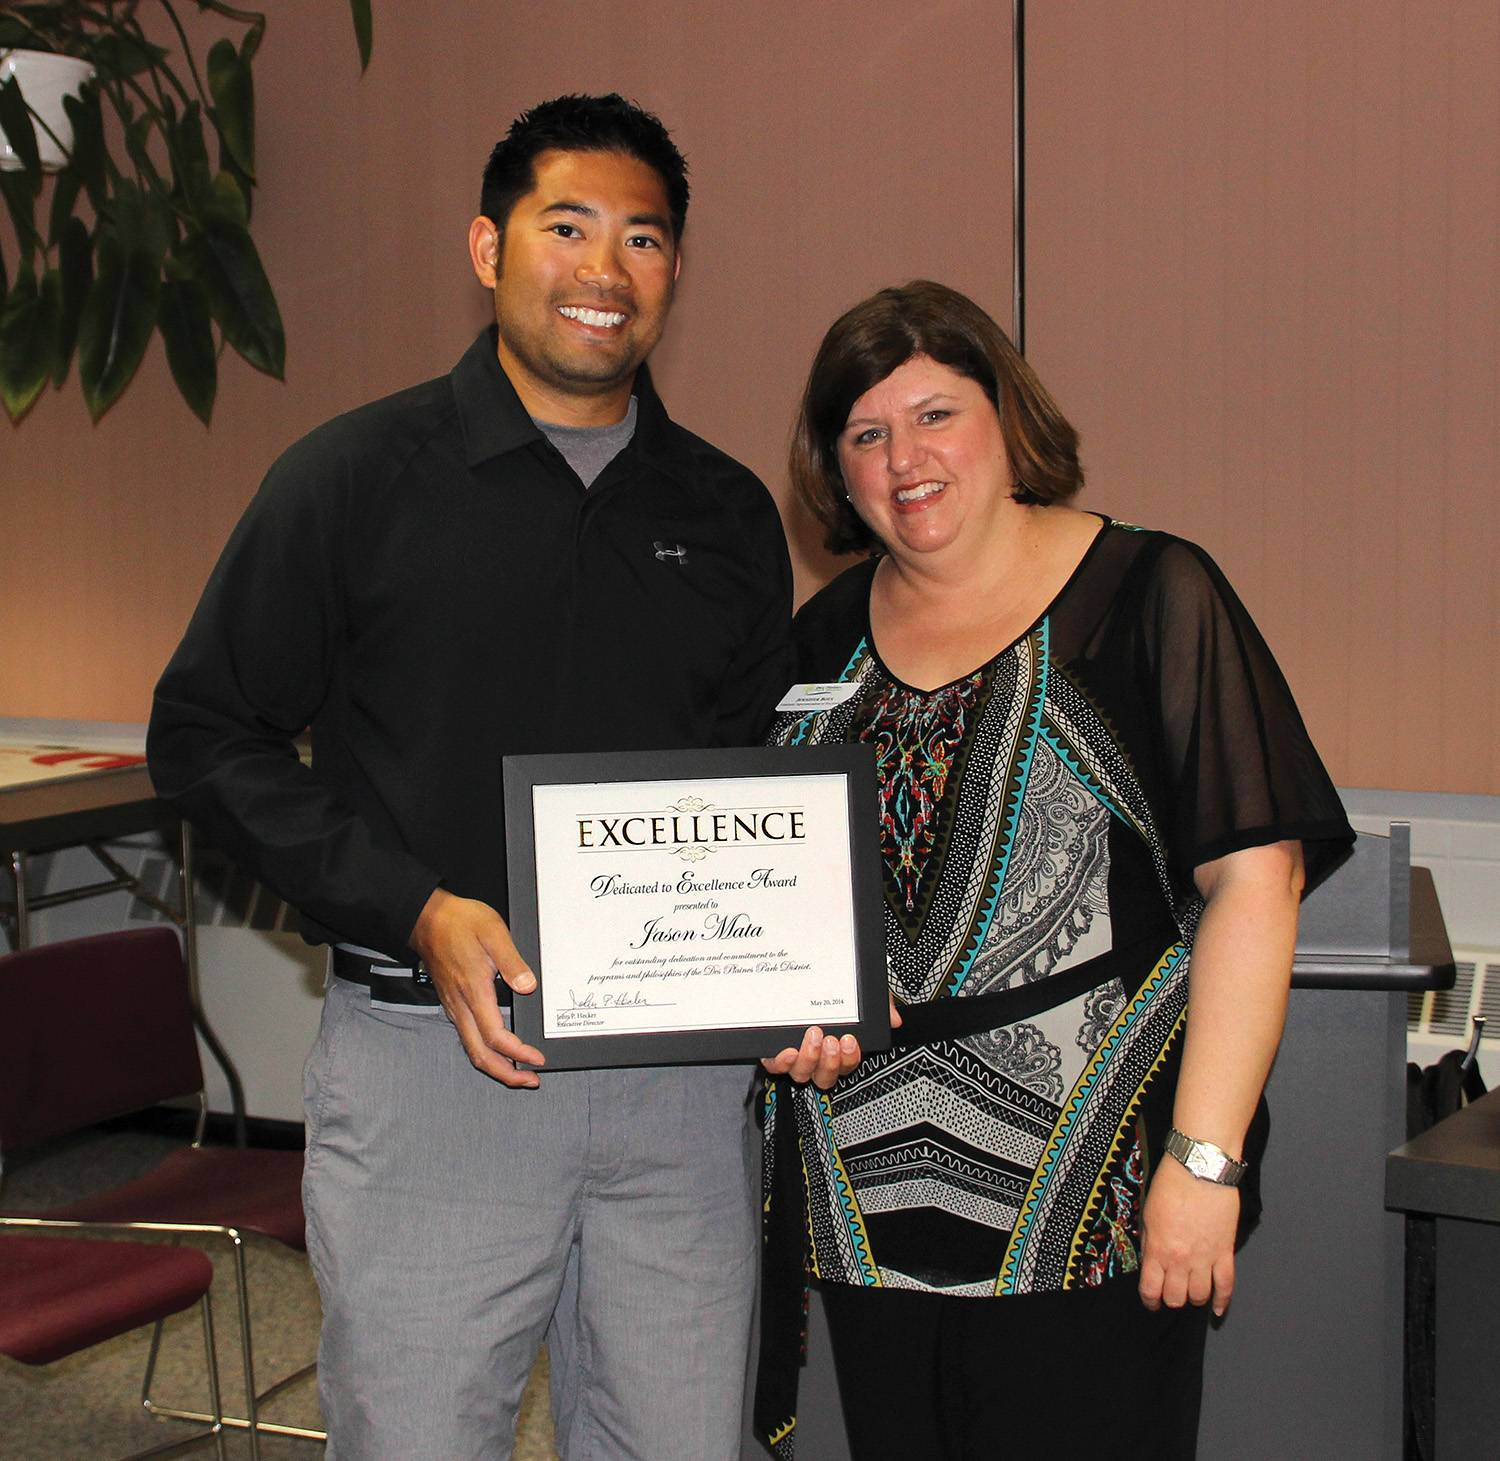 Jason Mata received the Dedicated to Excellence Award at the May 20 Des Plaines Park Board Meeting, from Jennifer Boys, Assistant Superintendent of Recreation.Gene Haring